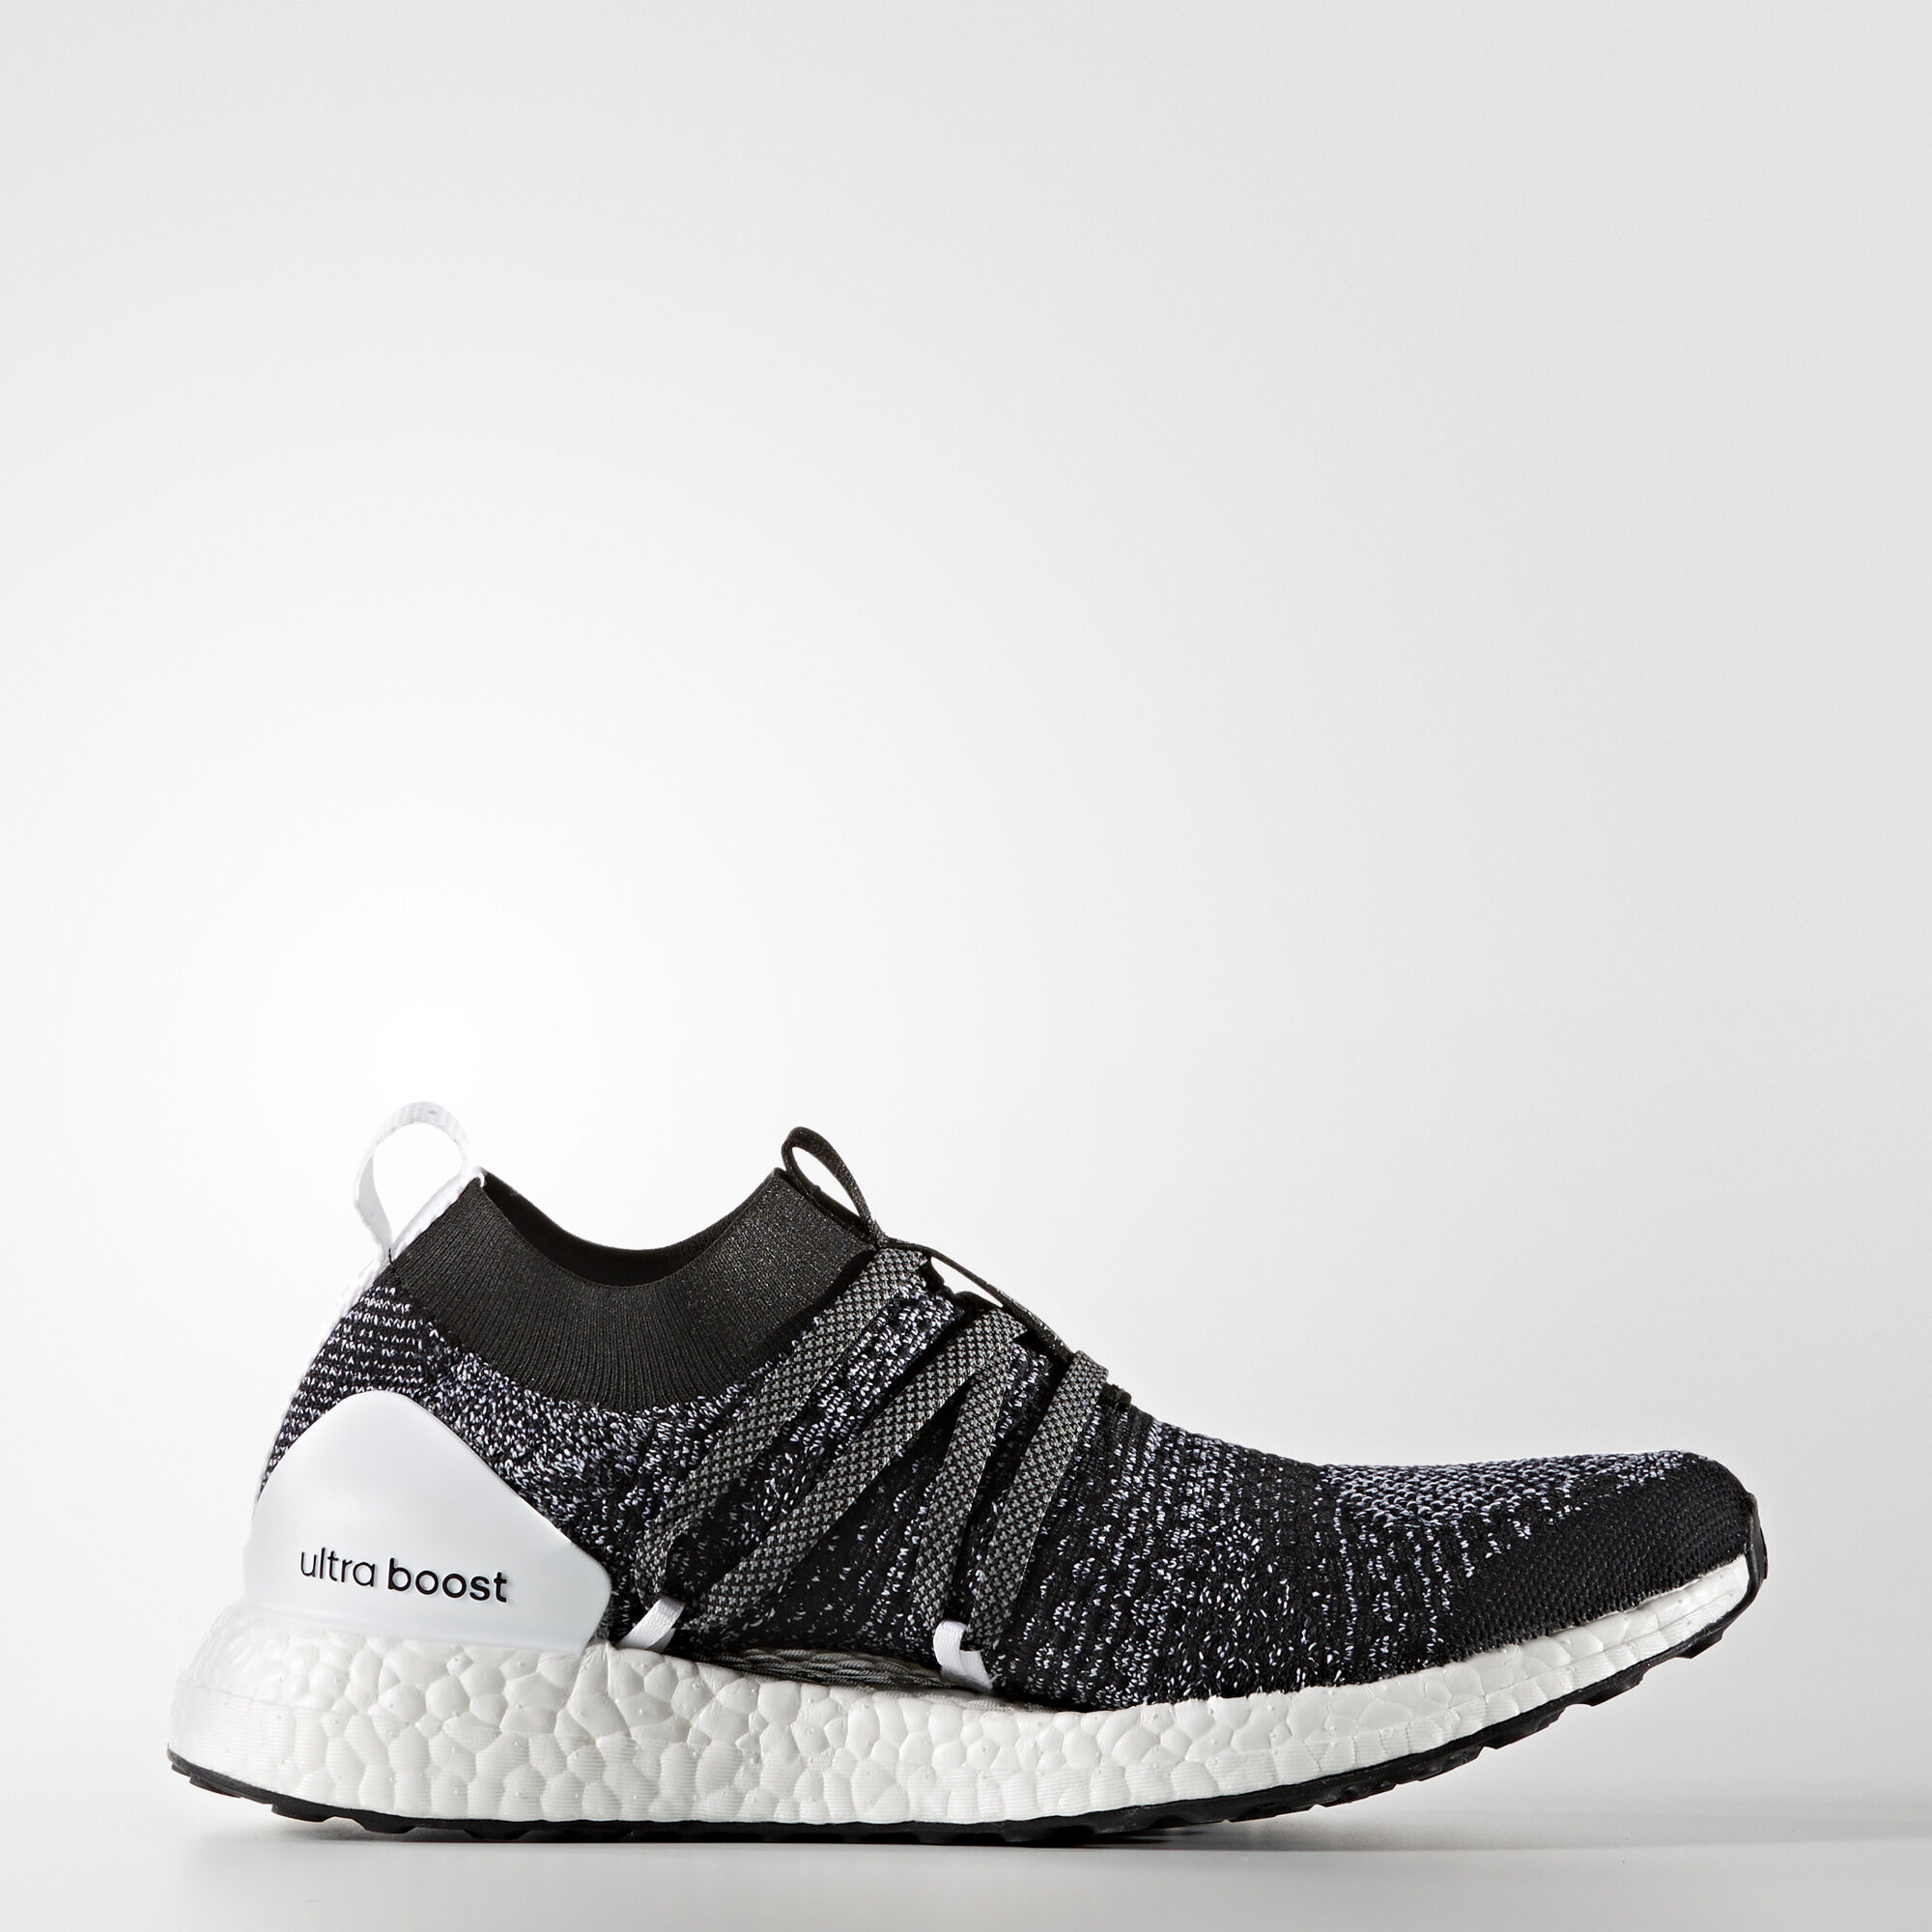 4d7f86fe6 Adidas Ultra Boost Black White wallbank-lfc.co.uk